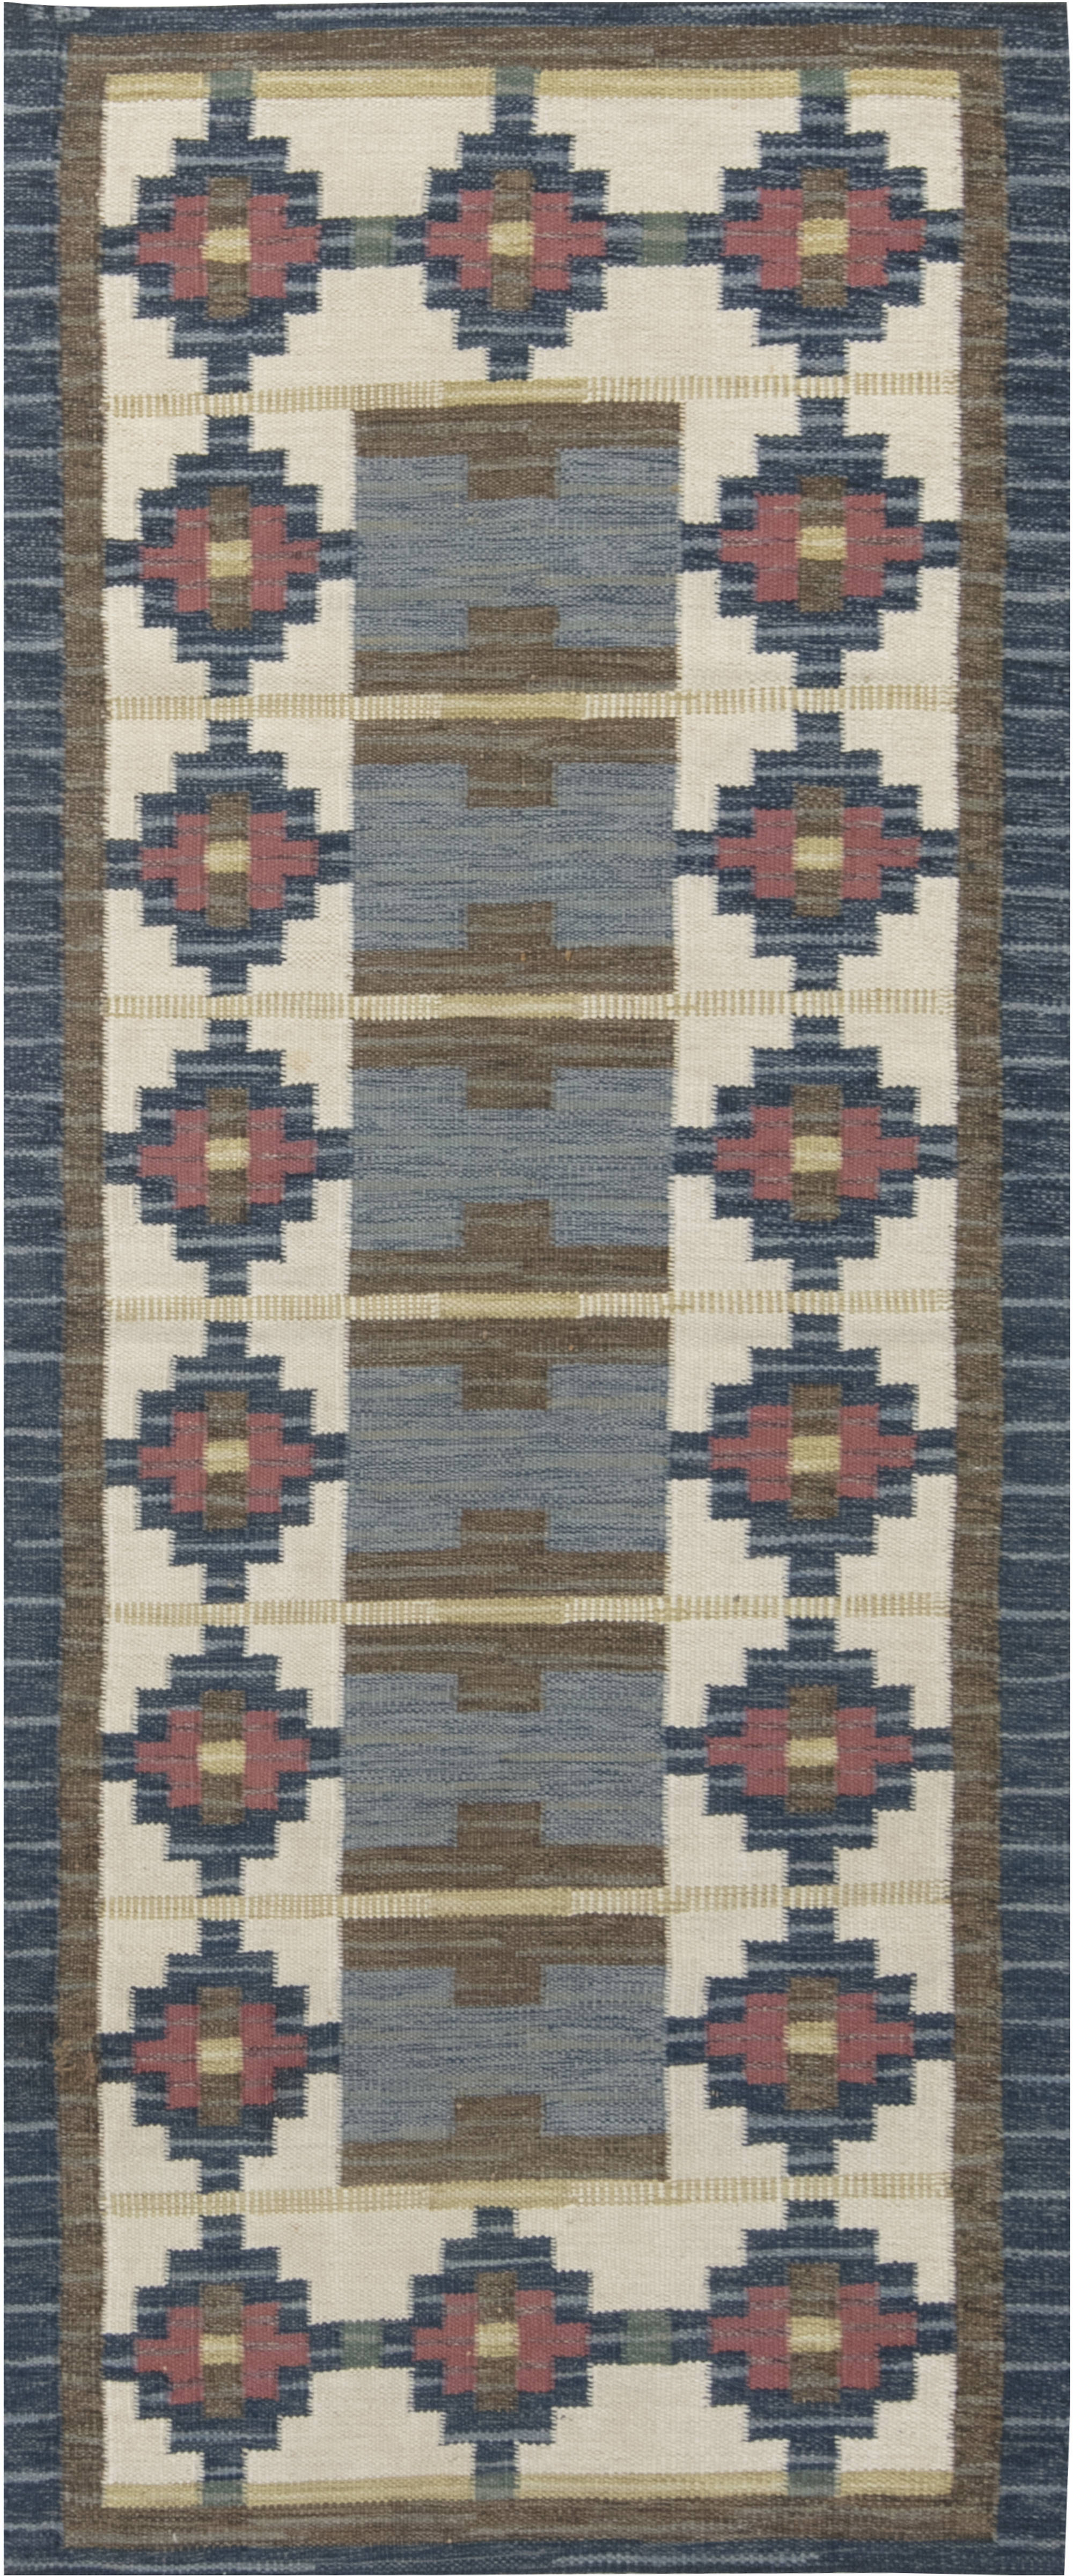 VINTAGE SWEDISH FLAT WEAVE RUG BY IDA RYDELIUS BB6662